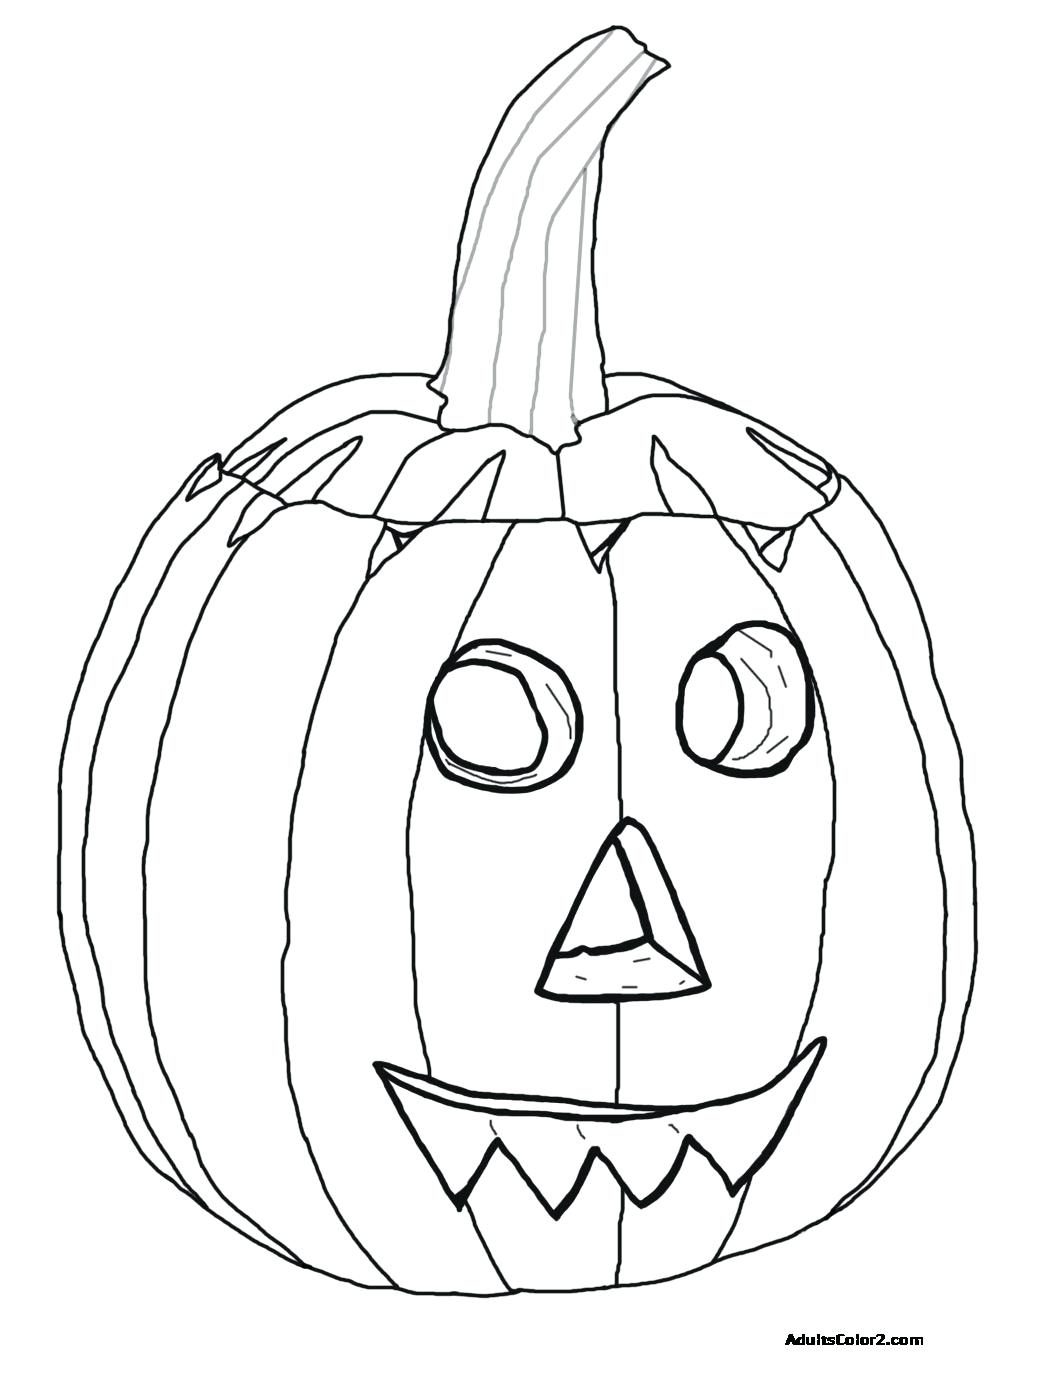 1063x1375 Fresh Coloring Coloring Pages Jack O Lanterns Free Coloring